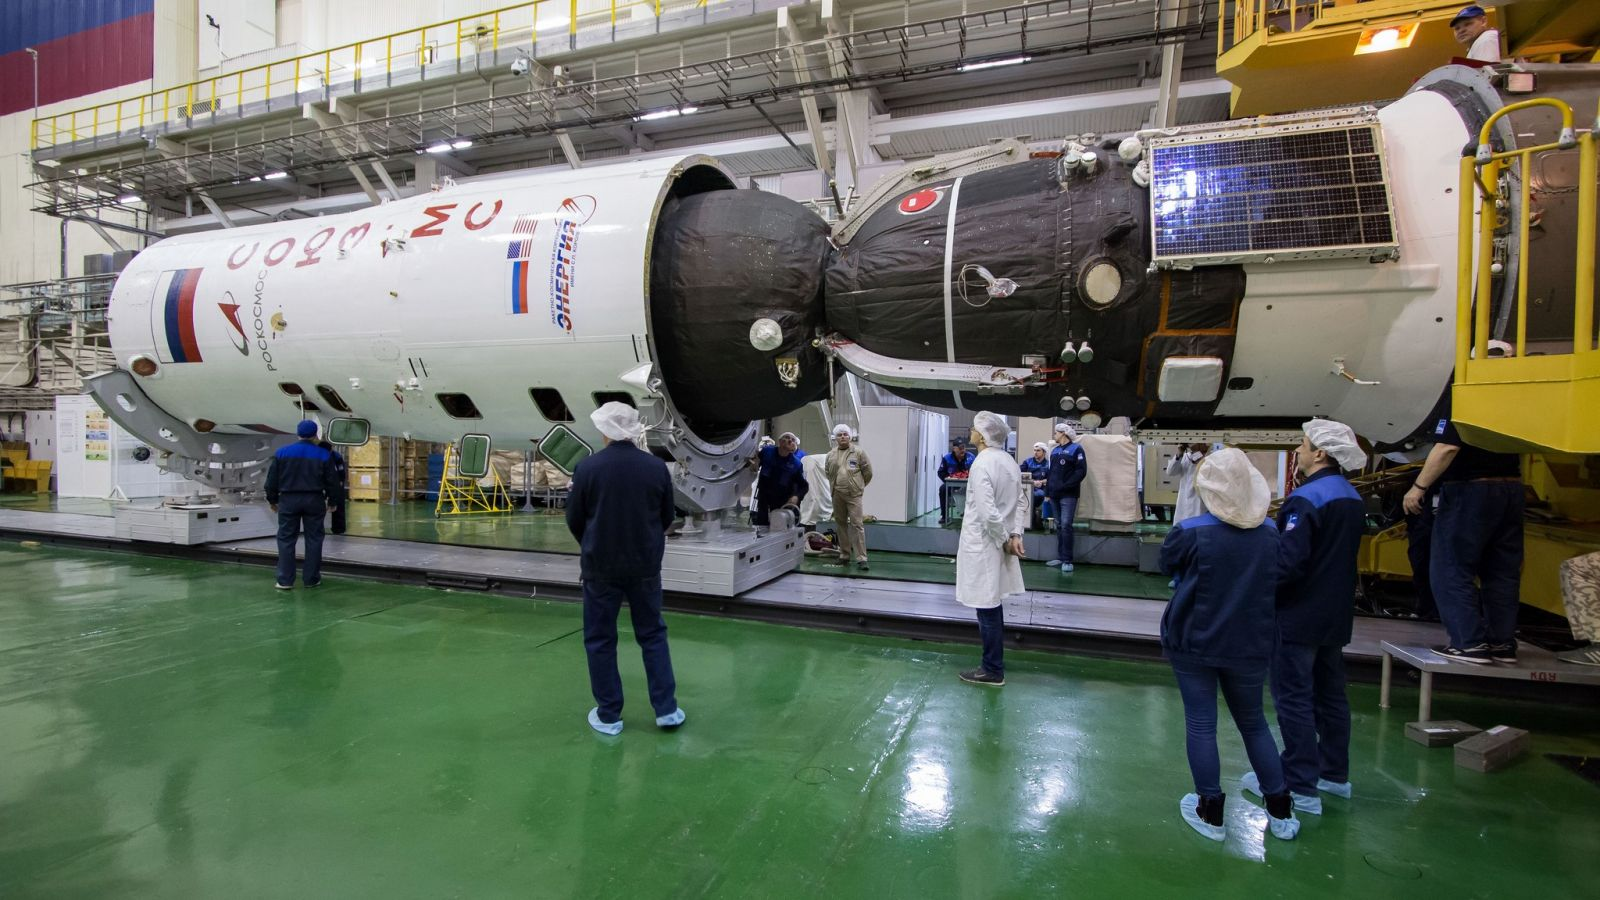 Soyuz MS-12 is encapsulated into a payload fairing before being attached to a Soyuz-FG rocket. Photo Credit: Victor Zelentsov / NASA